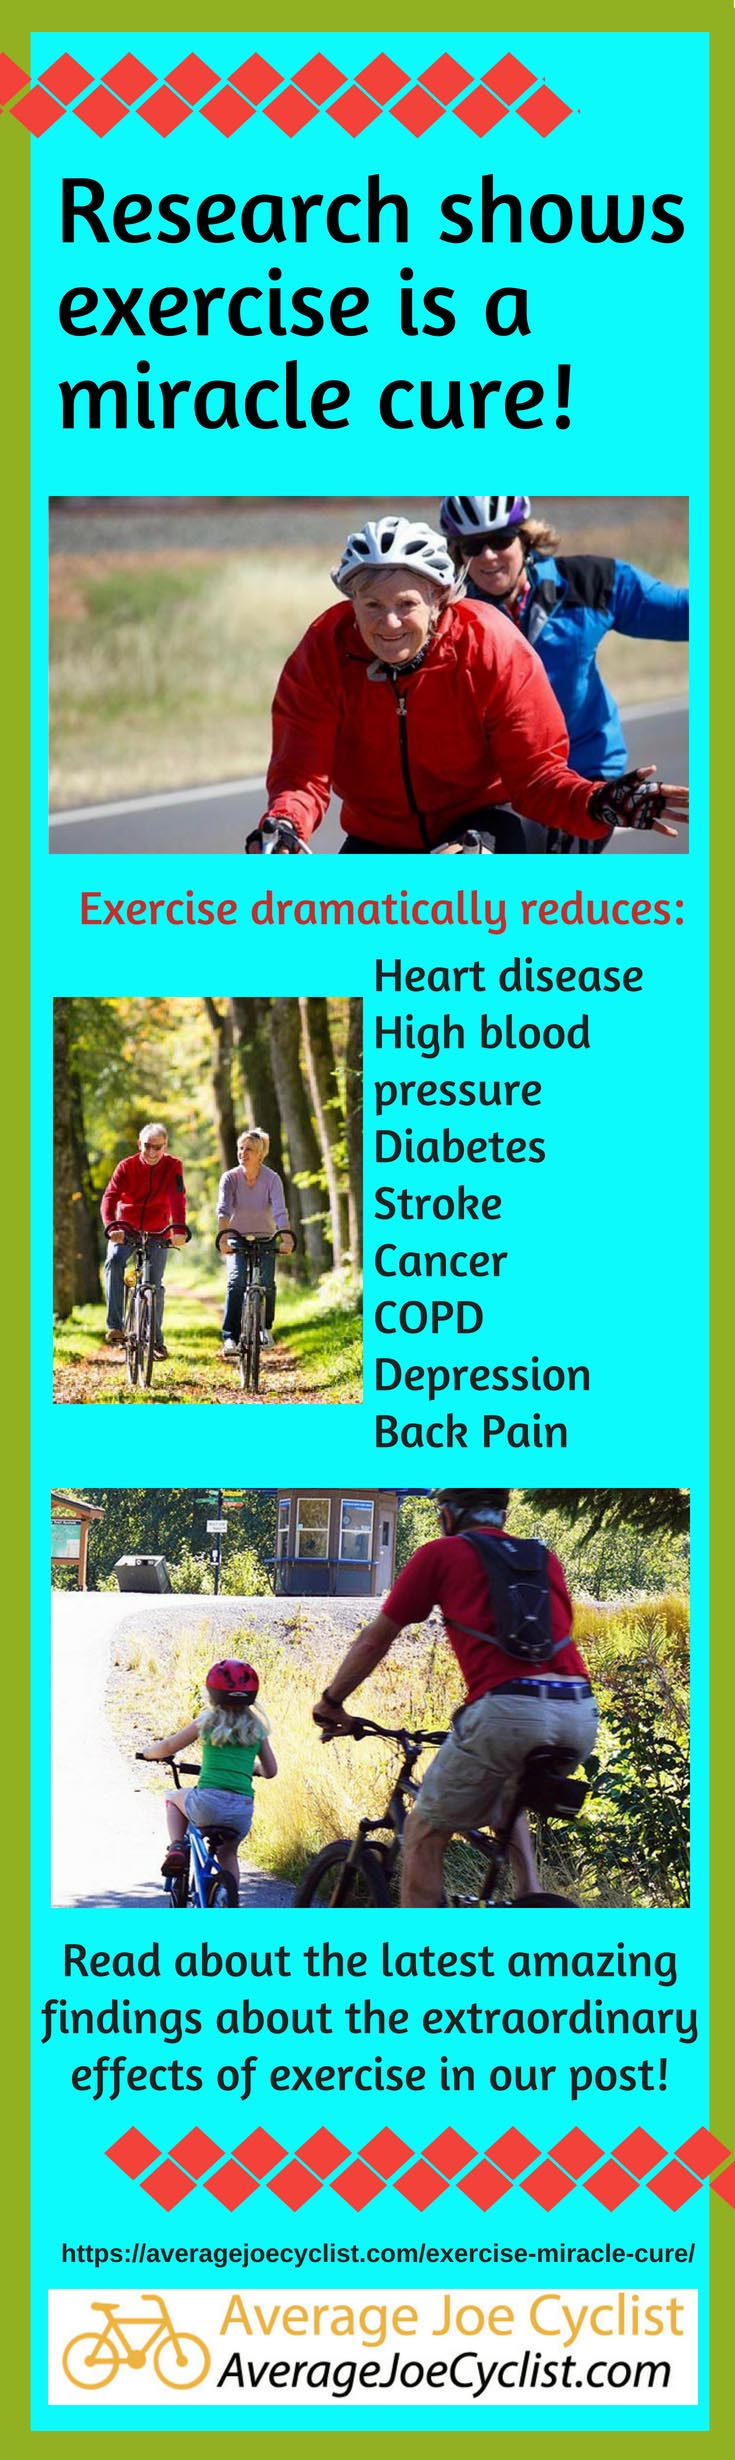 Health Benefits of Exercise - Research Shows Exercise is a Miracle Cure